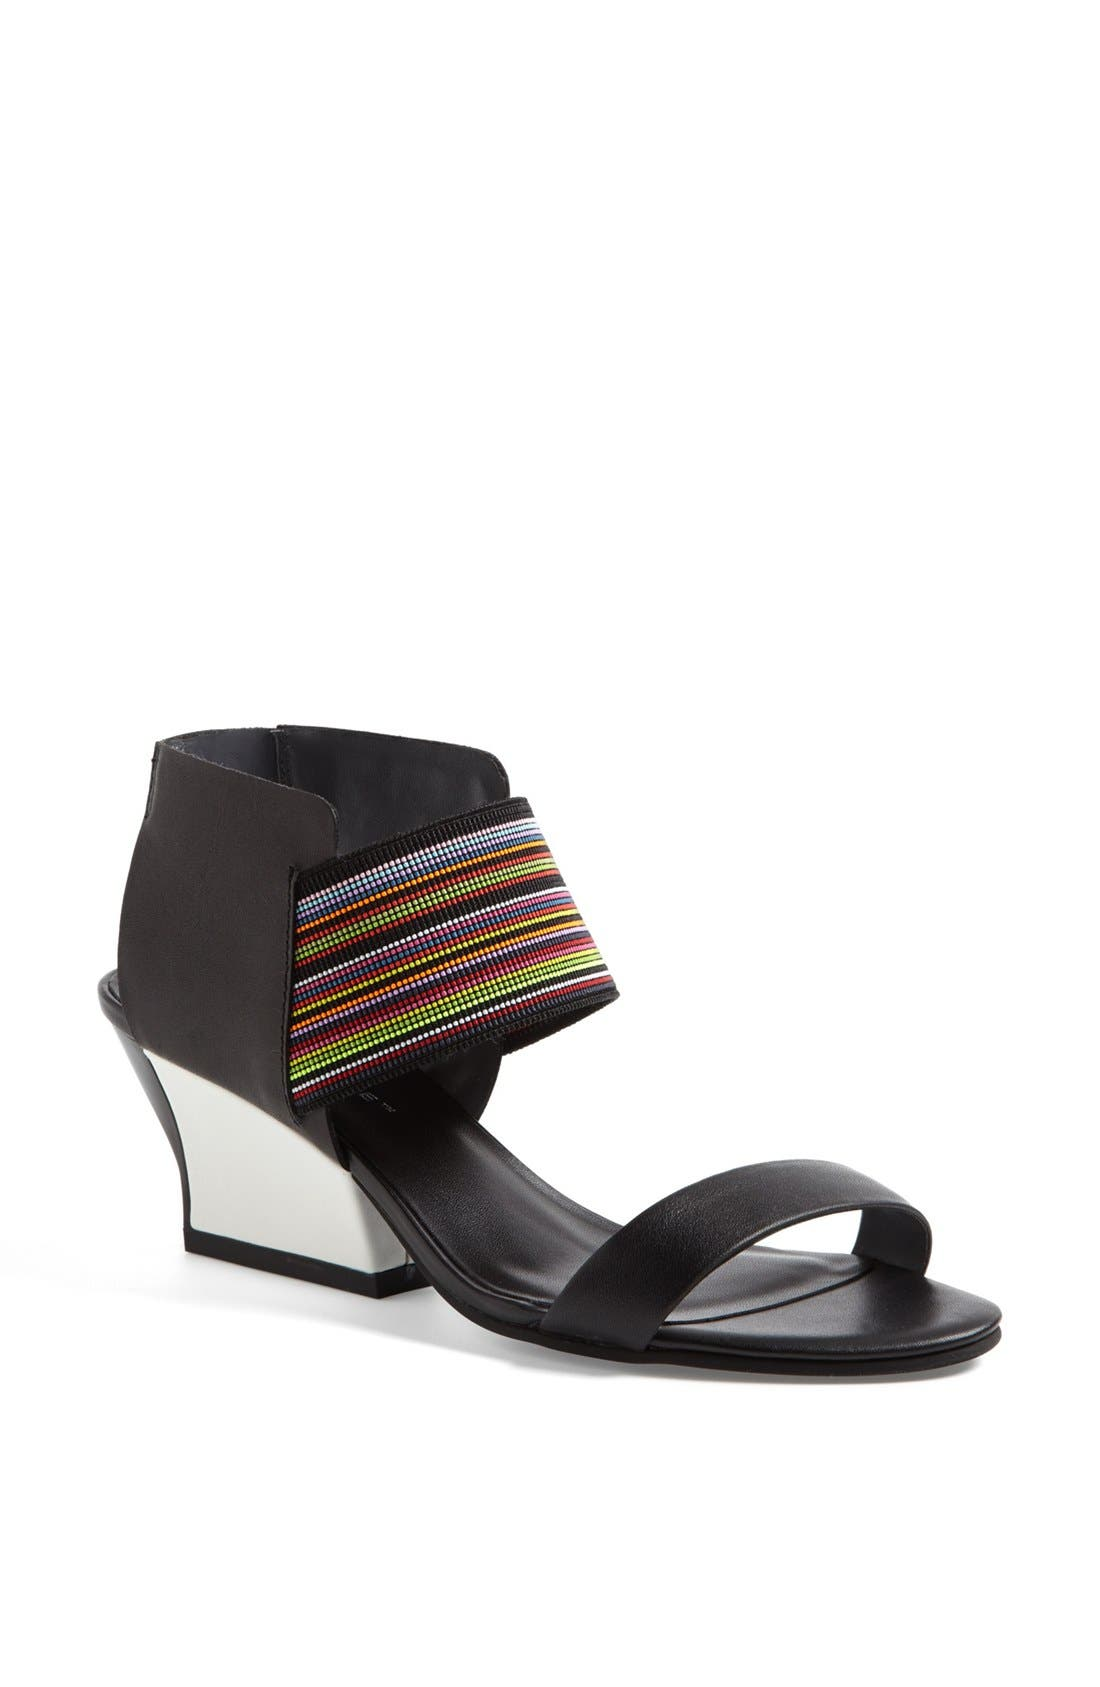 Alternate Image 1 Selected - United Nude Collection 'Raiko' Sandal (Online Only)